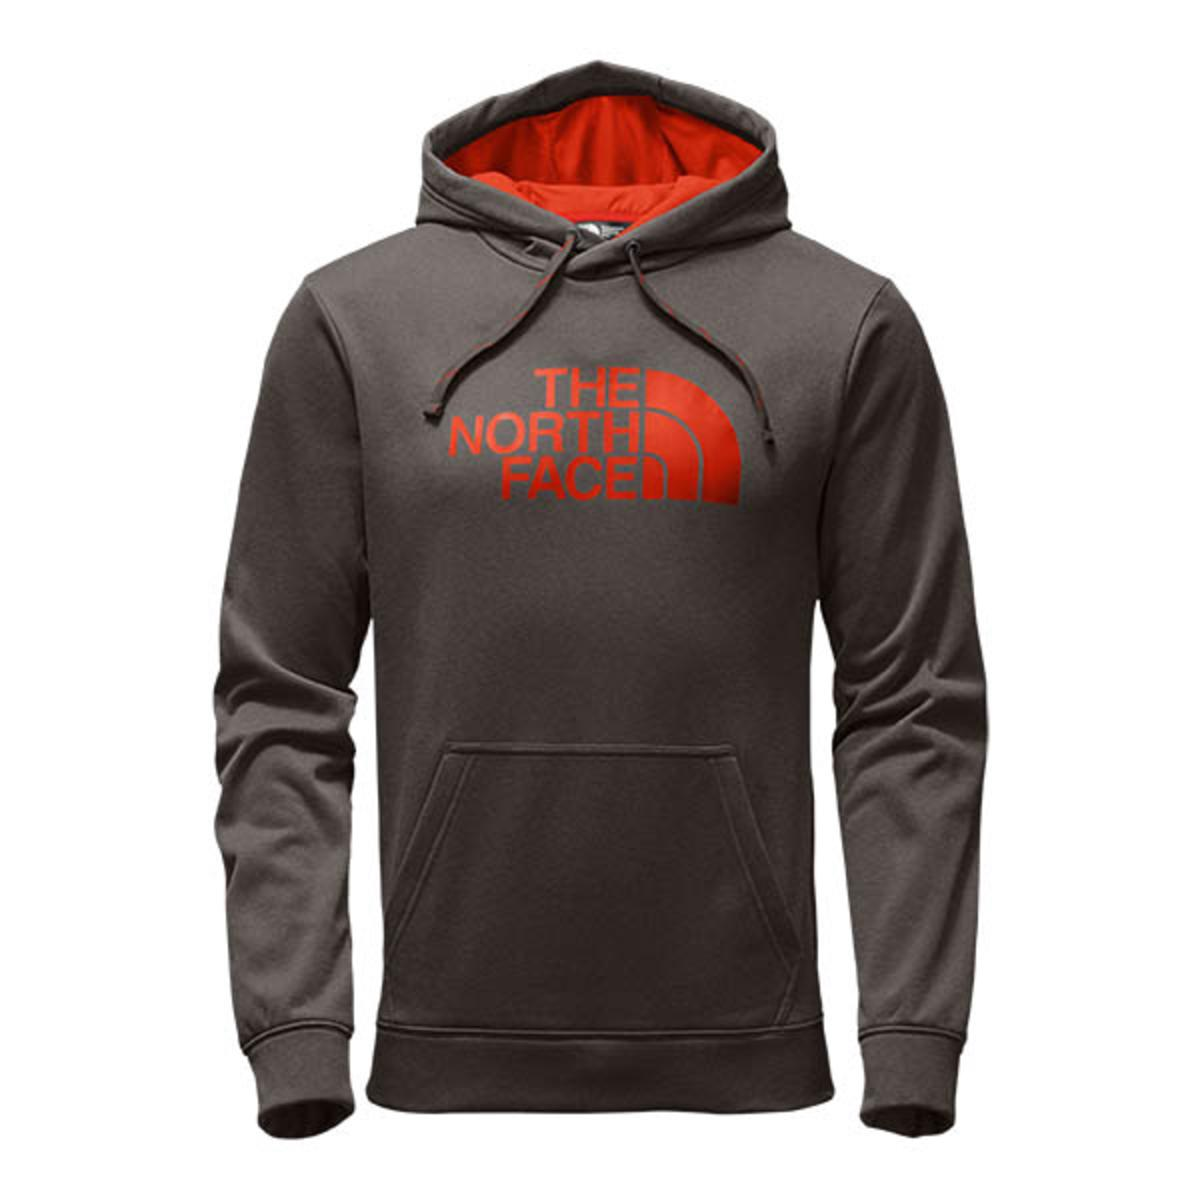 69bd88fc8a3a The North Face Men s Surgent Half Dome Hoodie - Falcon Brown Heather Acrylic  Orange